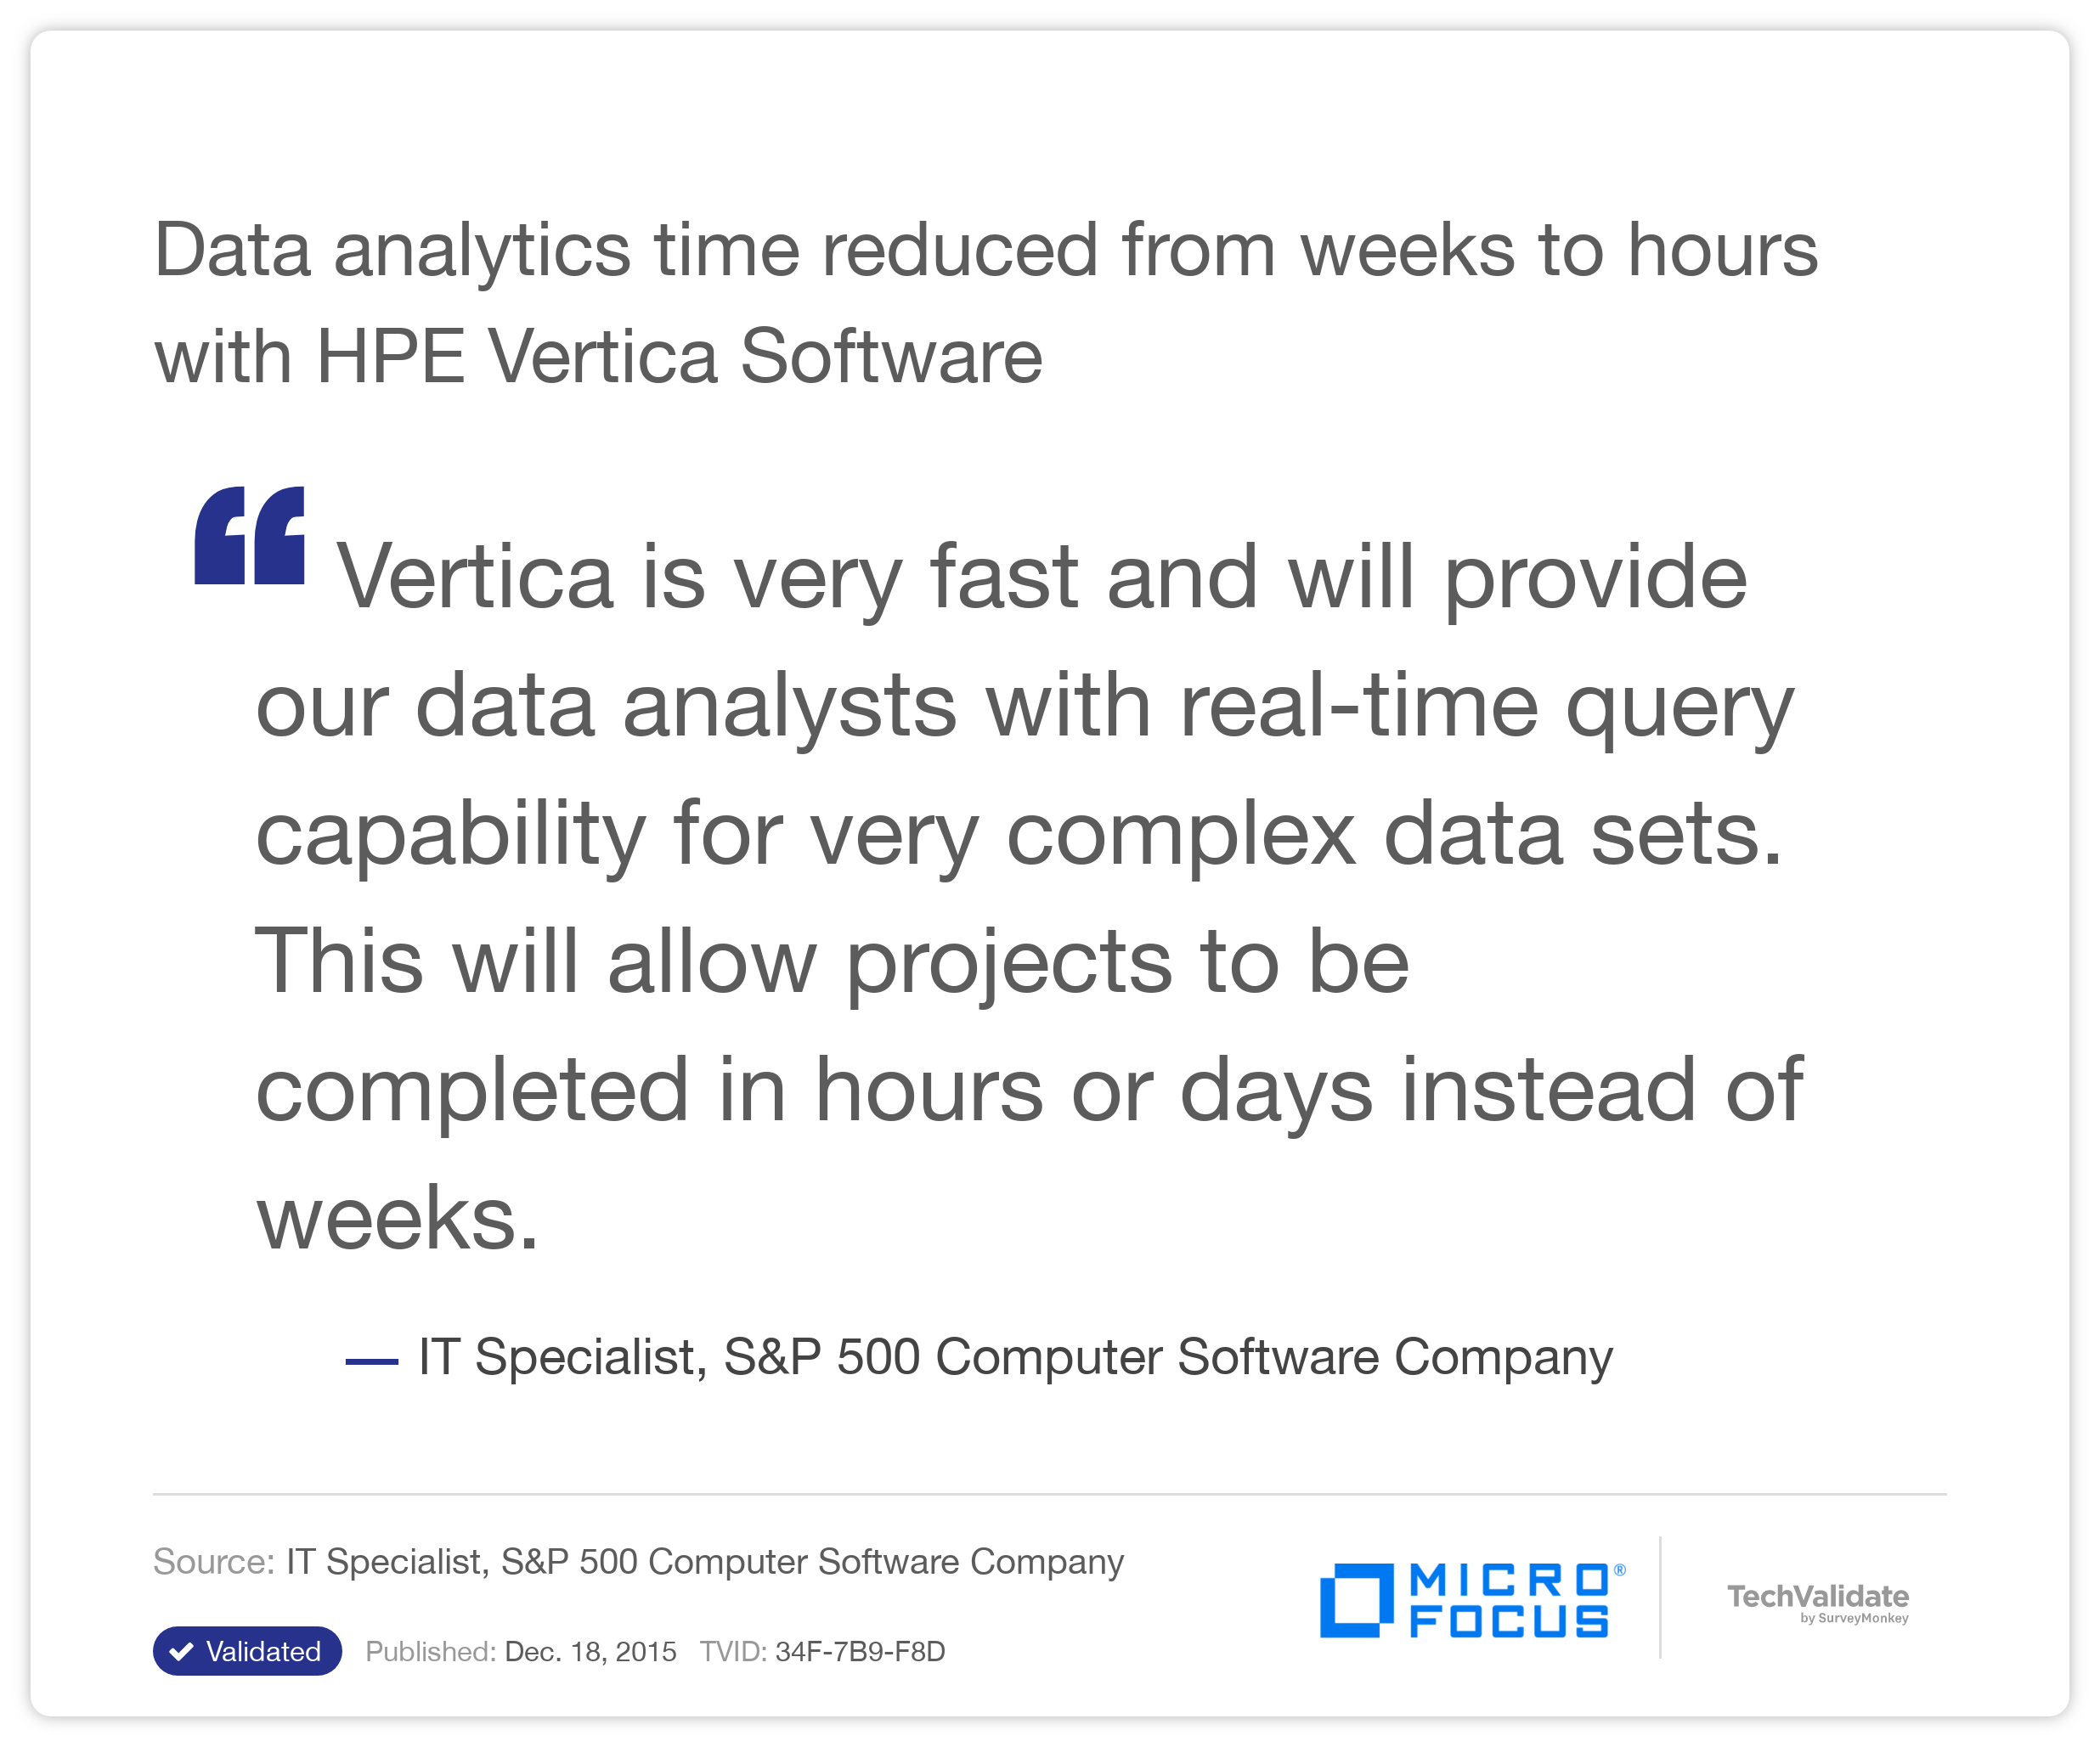 Data analytics time reduced from weeks to hours with HP Vertica Software